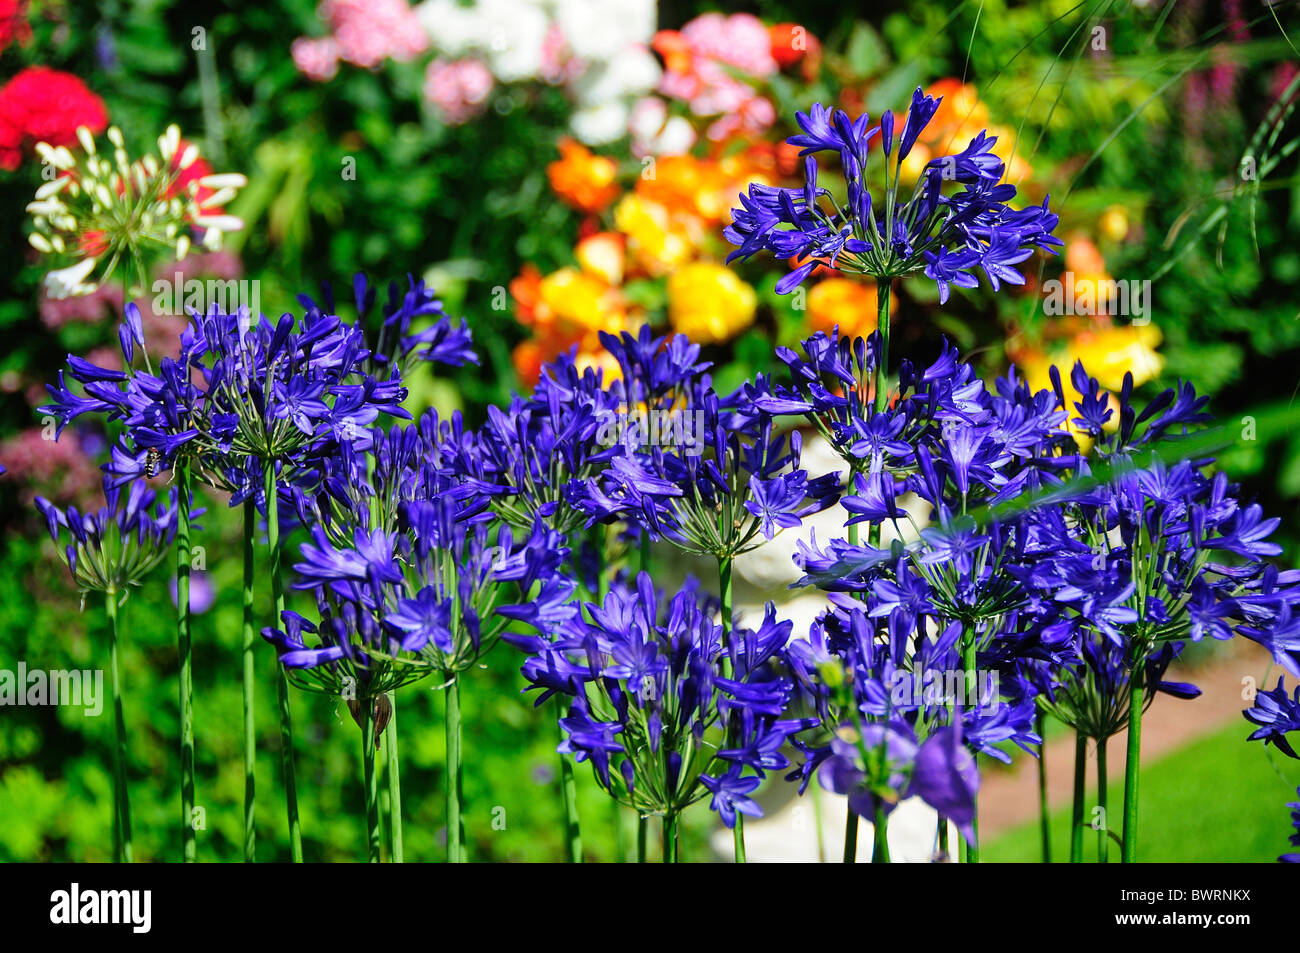 Agapanthus or African blue lily in bloom. Dorset, UK August 2010 - Stock Image